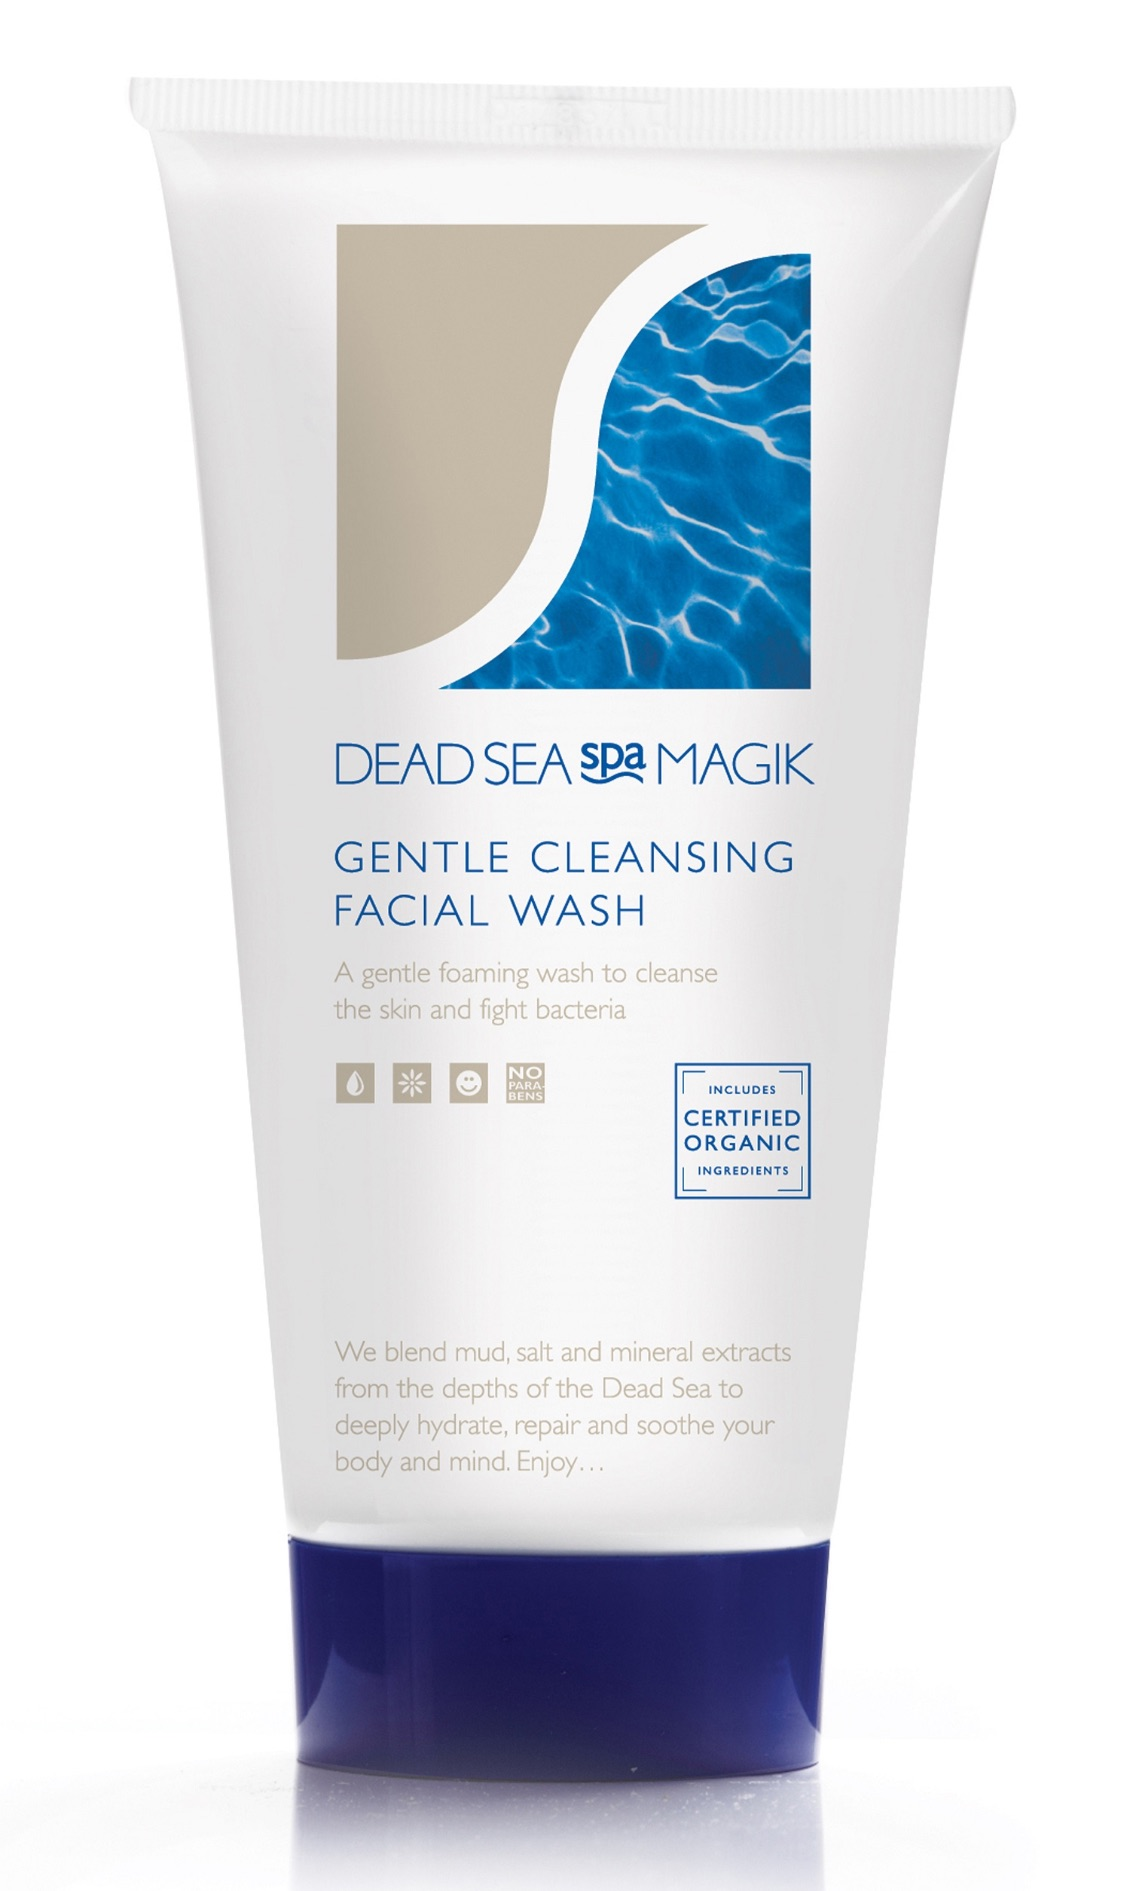 Dead Sea Spa Magik Gentle Cleansing Facial Wash 150ml